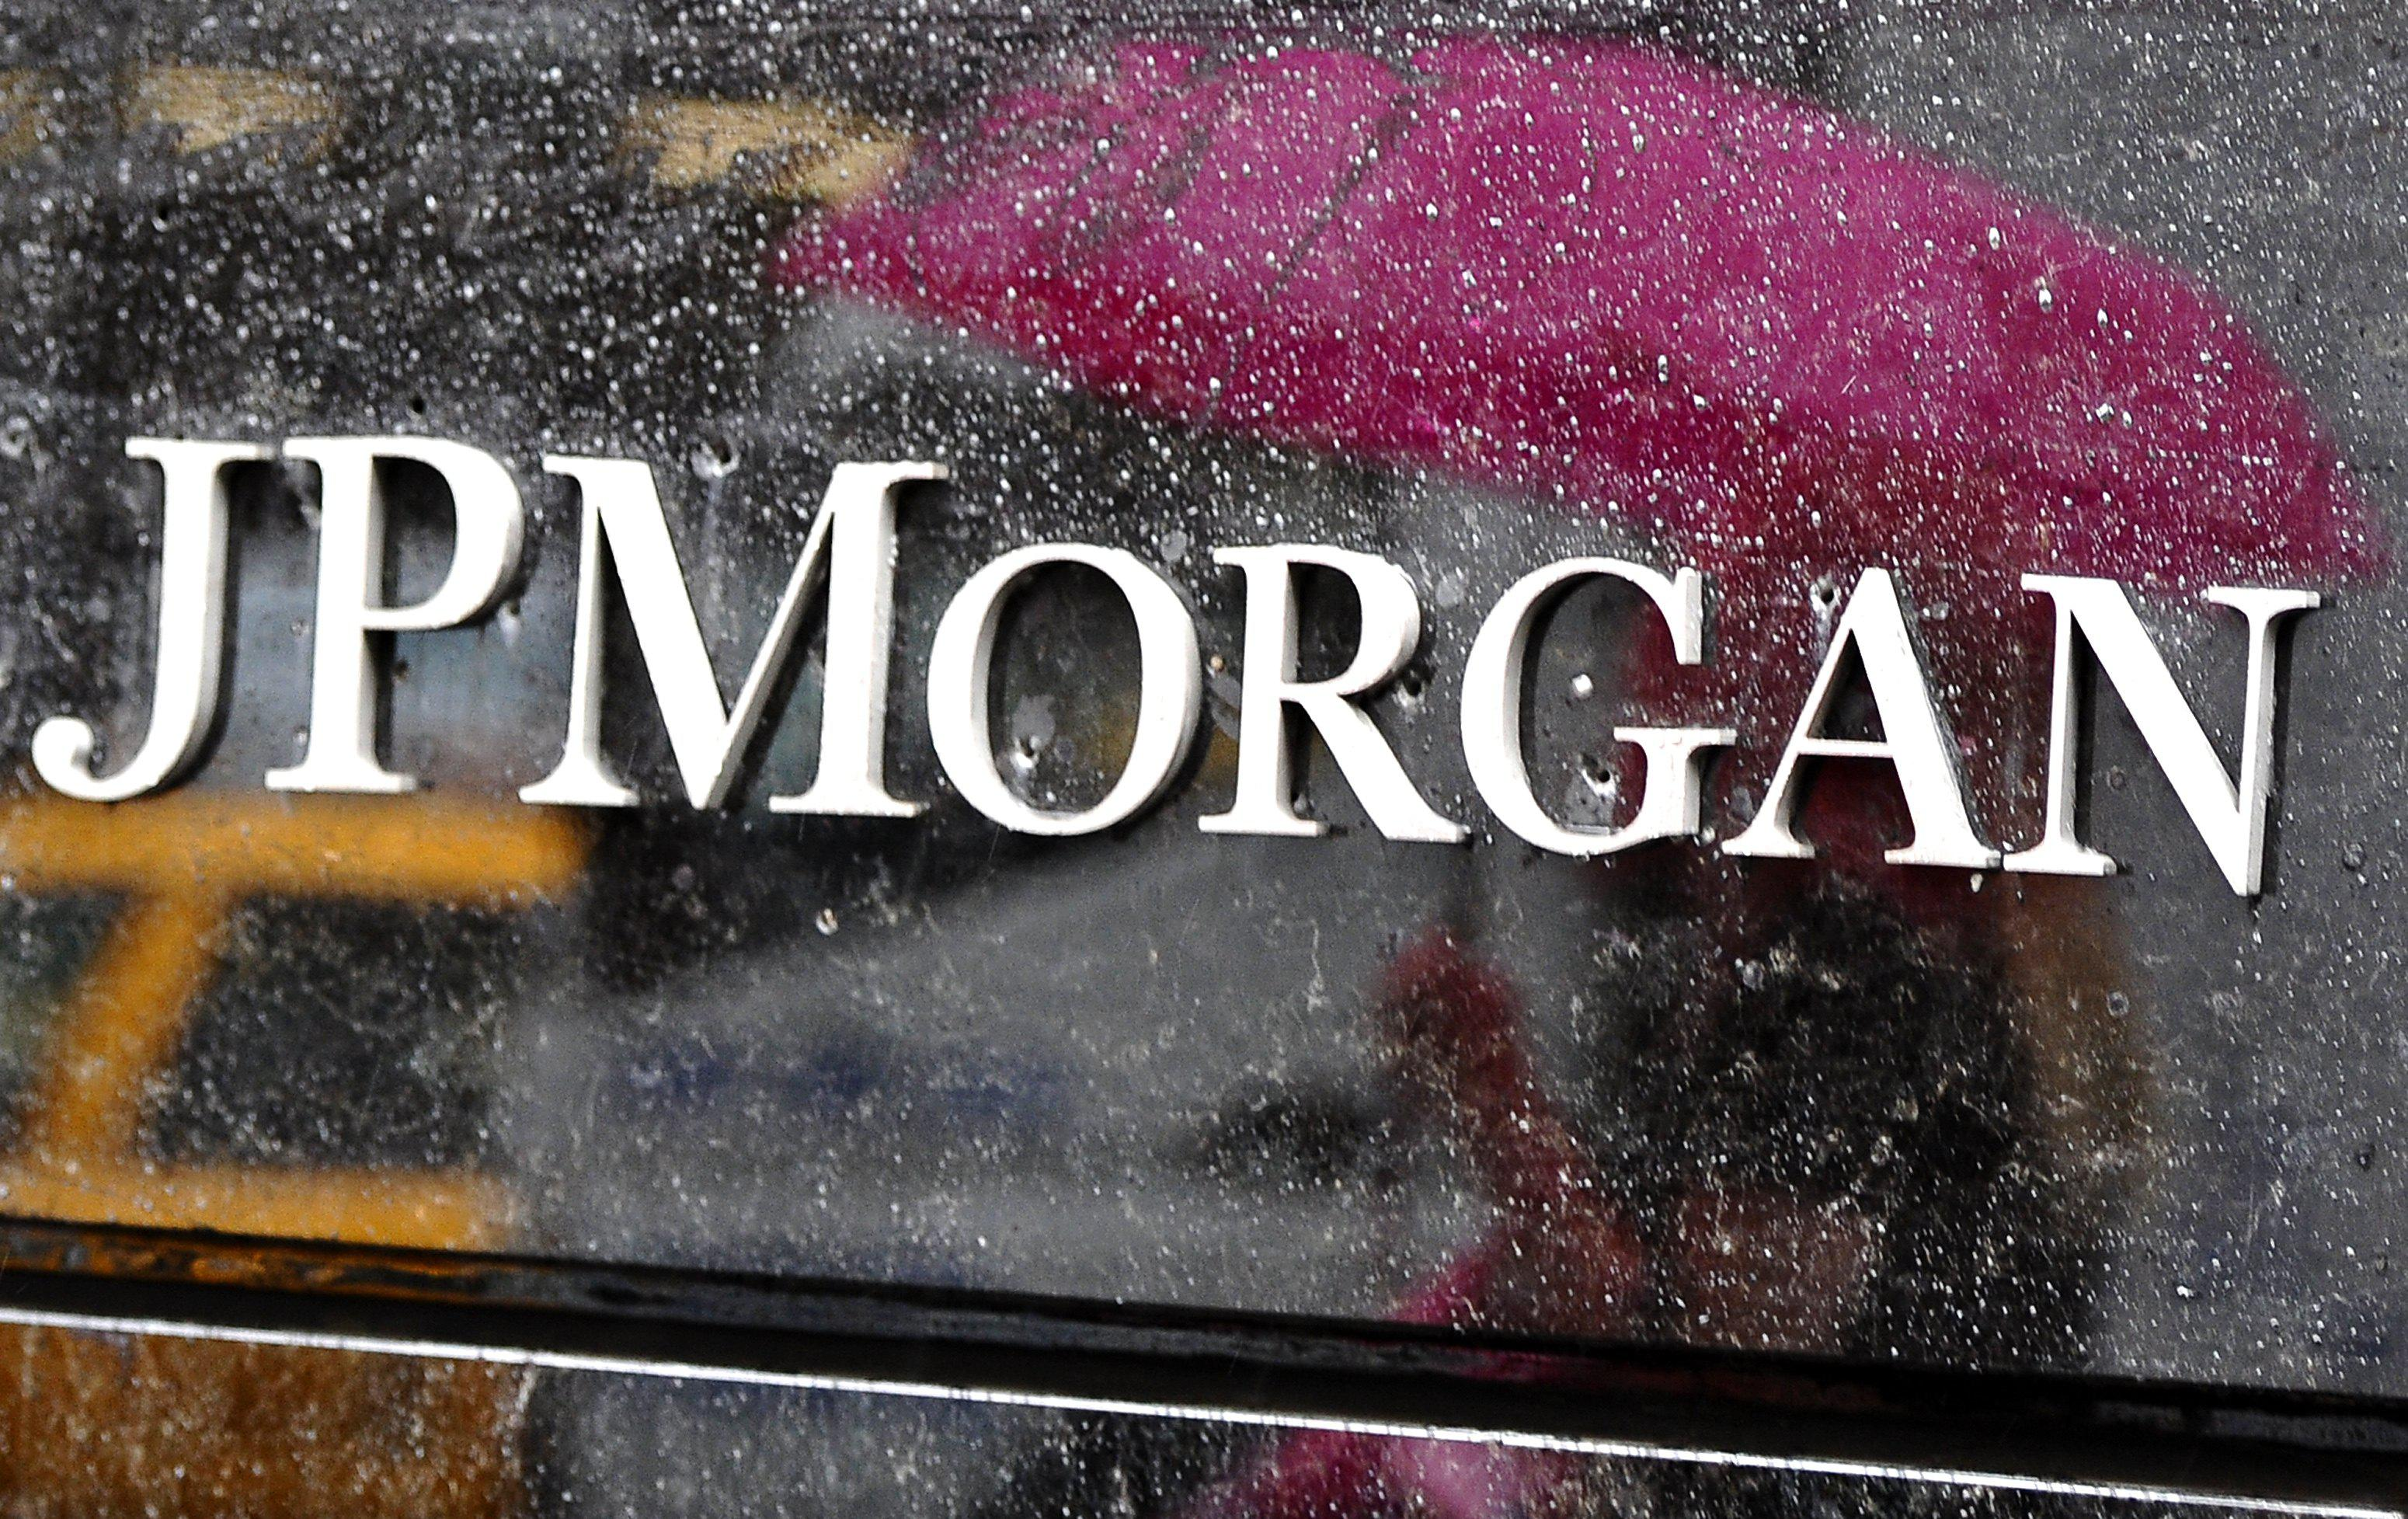 JPMorgan used a Palantir tool that analyzed phone conversations, browser histories, GPS locations, and other info.